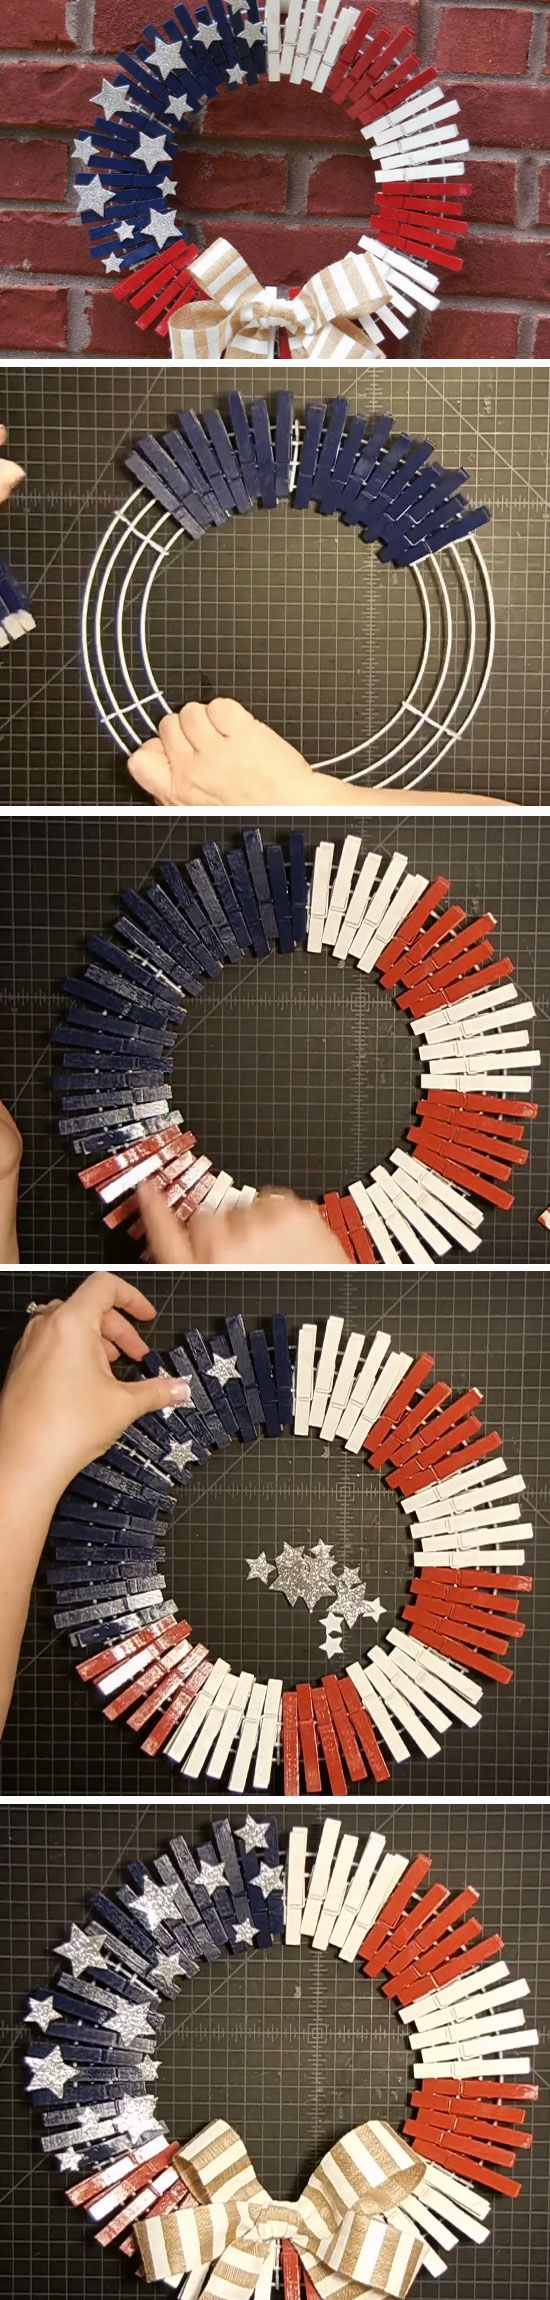 25+ Best Ideas about Memorial Day Decorations on Pinterest